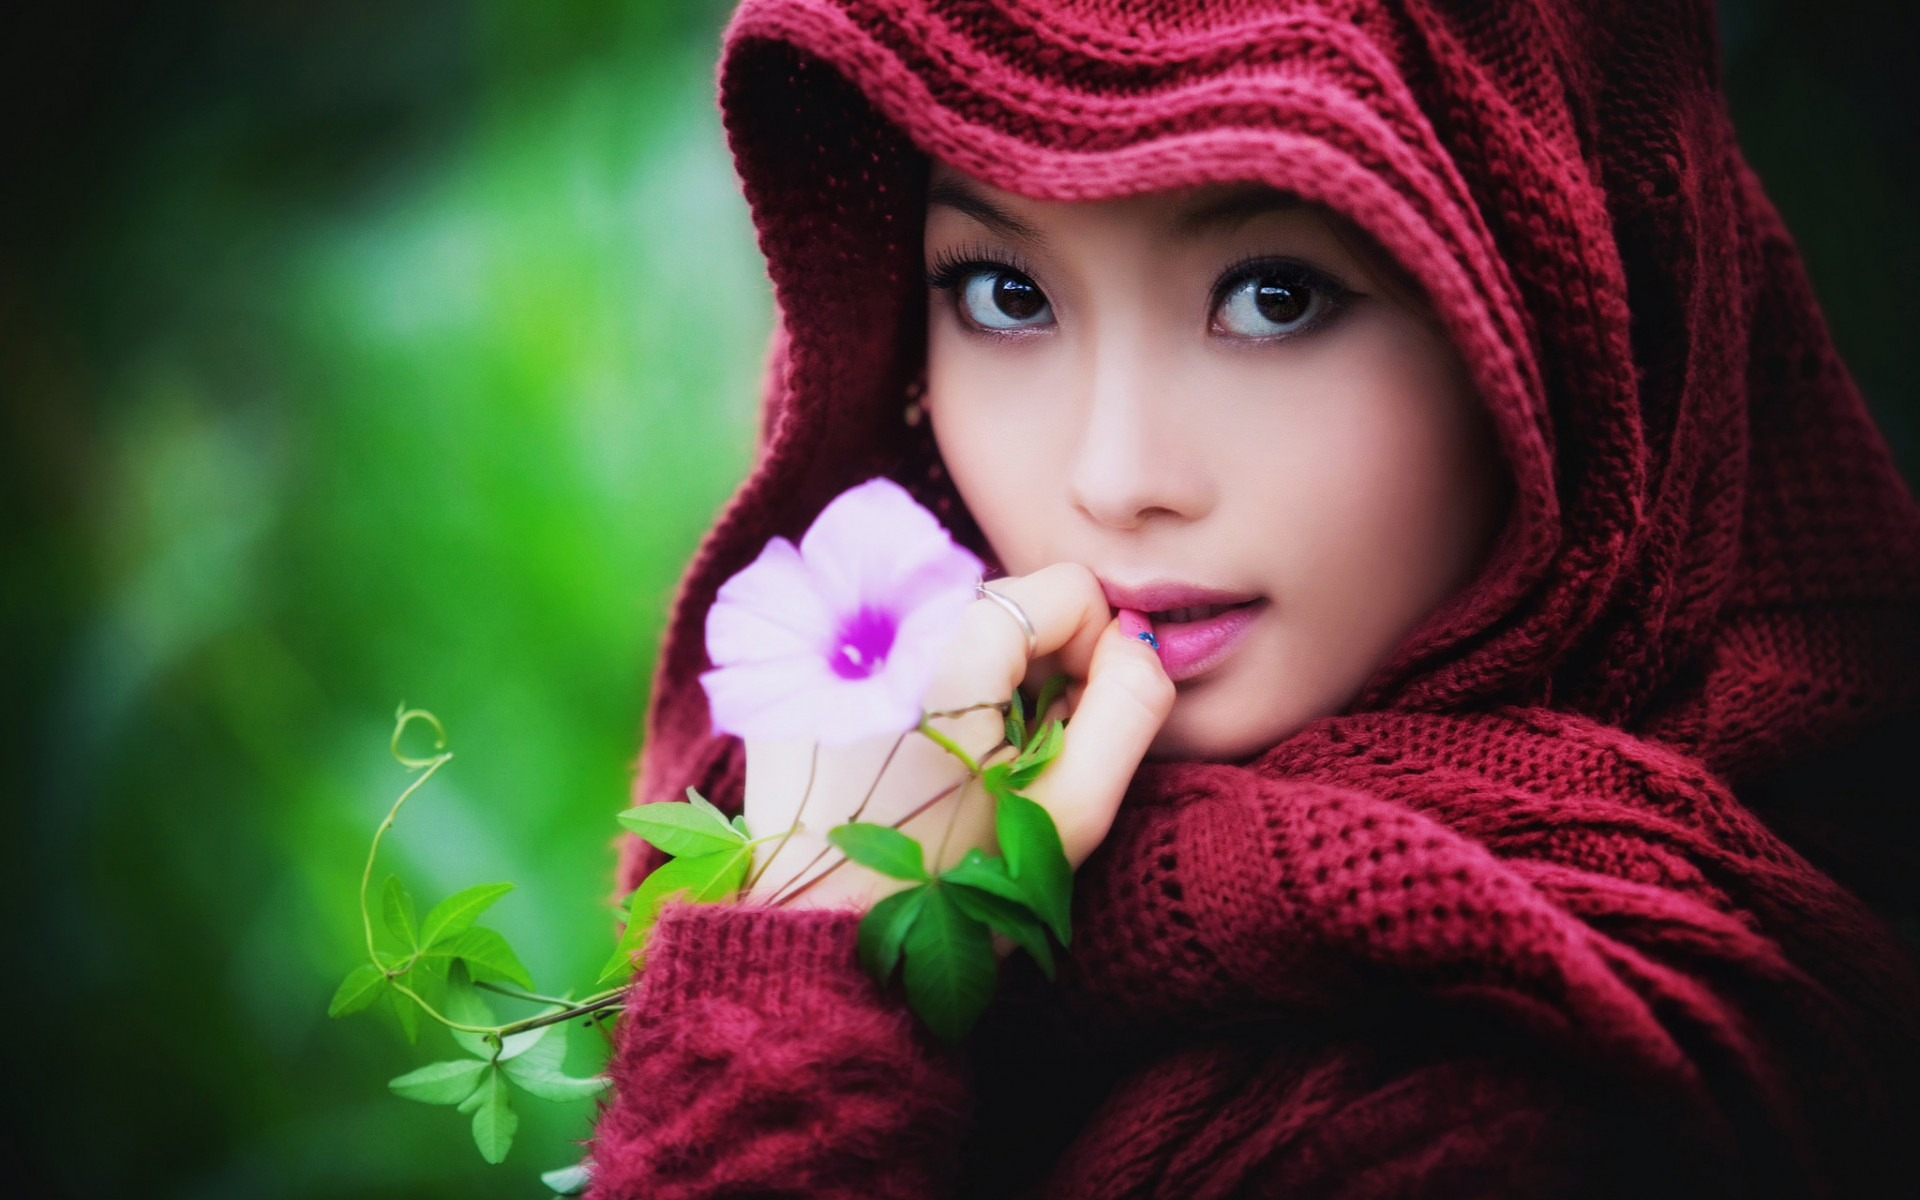 People / Wildflower Asian Girl Photo Hd Wallpaper - Beautiful Asian Girl Hd , HD Wallpaper & Backgrounds